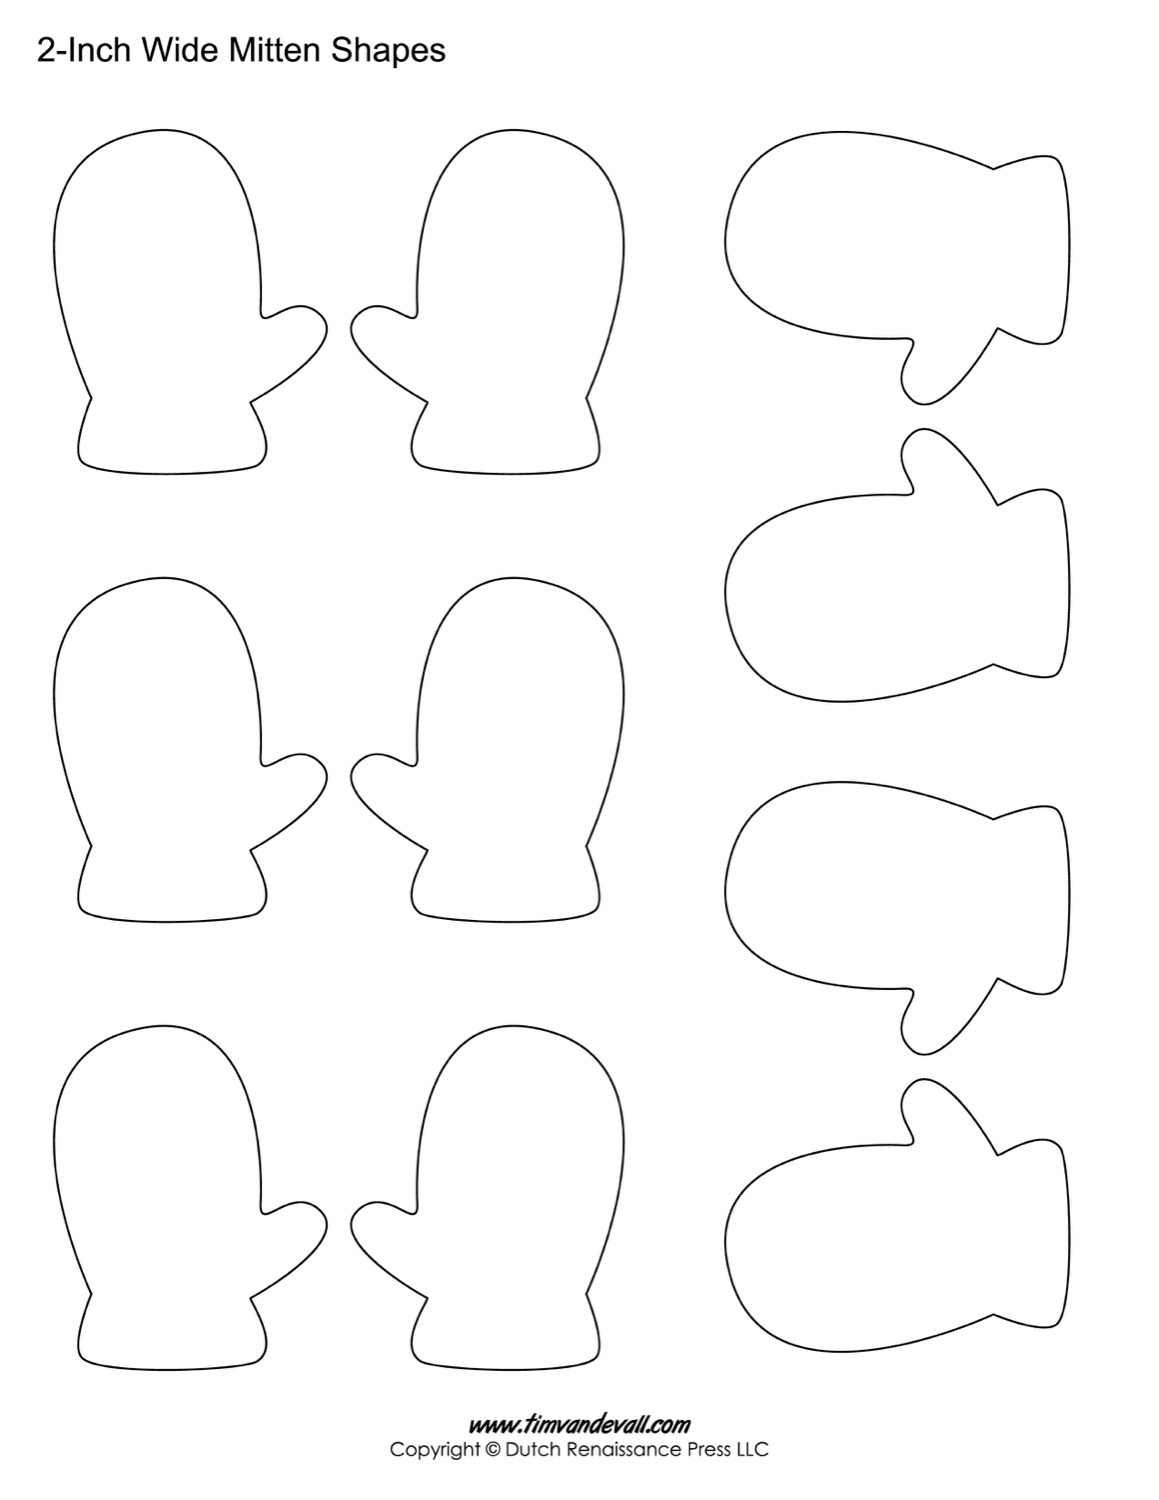 Preschool Mitten Shape Worksheet Preschool Best Free